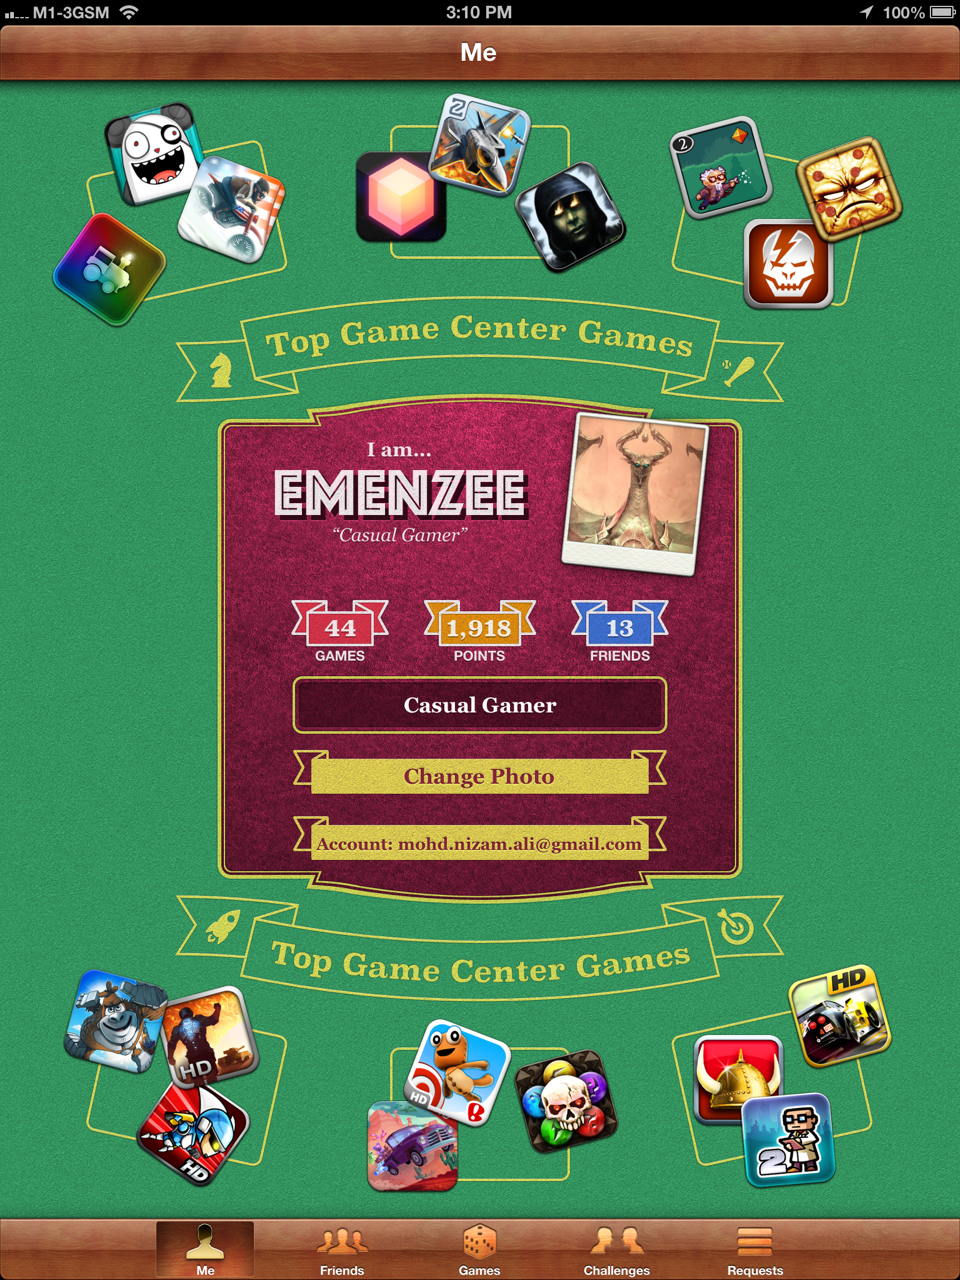 Cover photo of the games I played on the iOS (iPhone/iPad